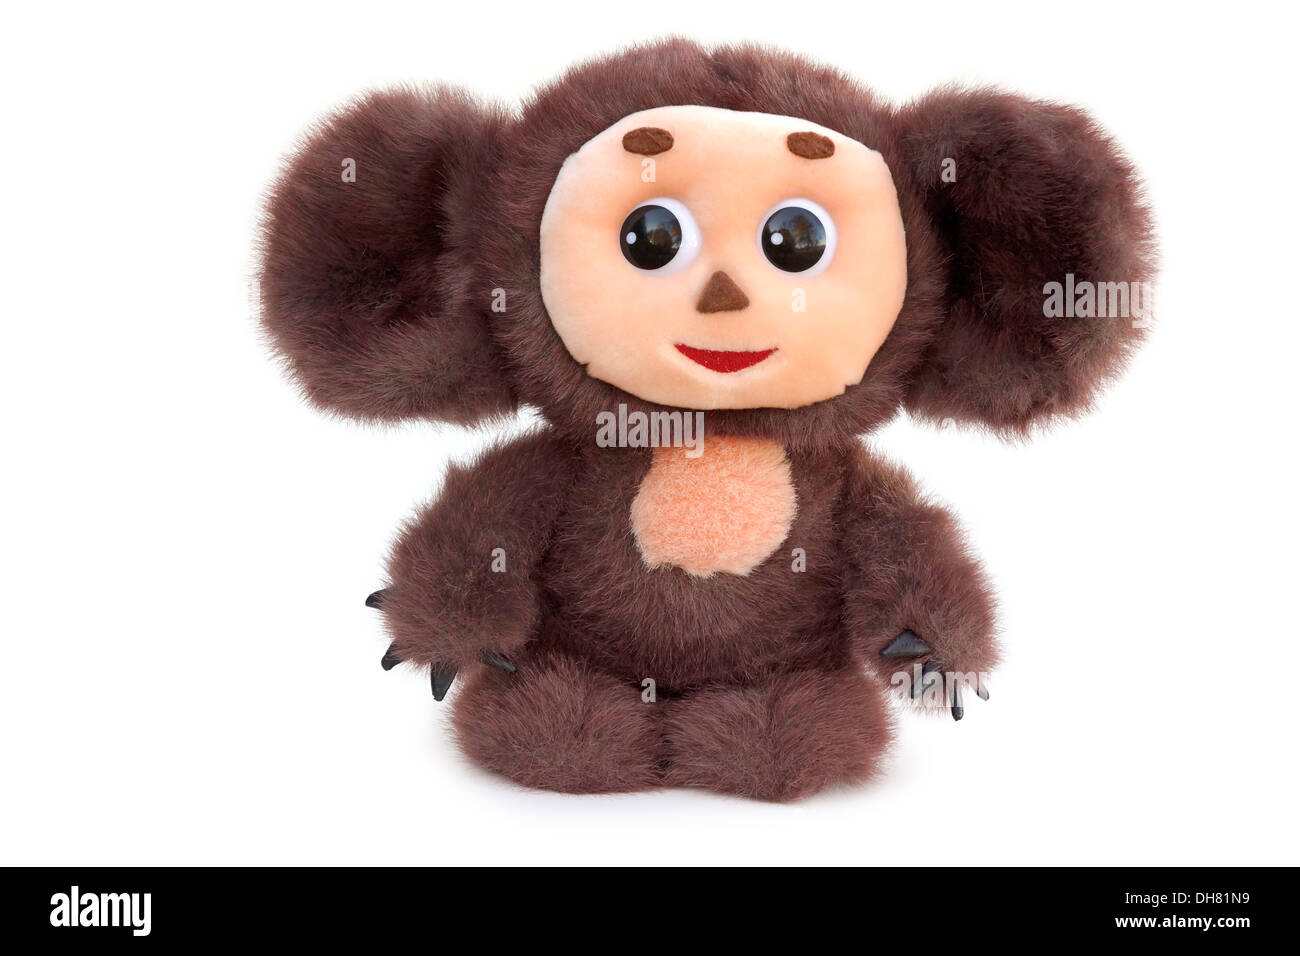 Cheburashka, Stofftier, russische Cartoon Charakter Stockbild